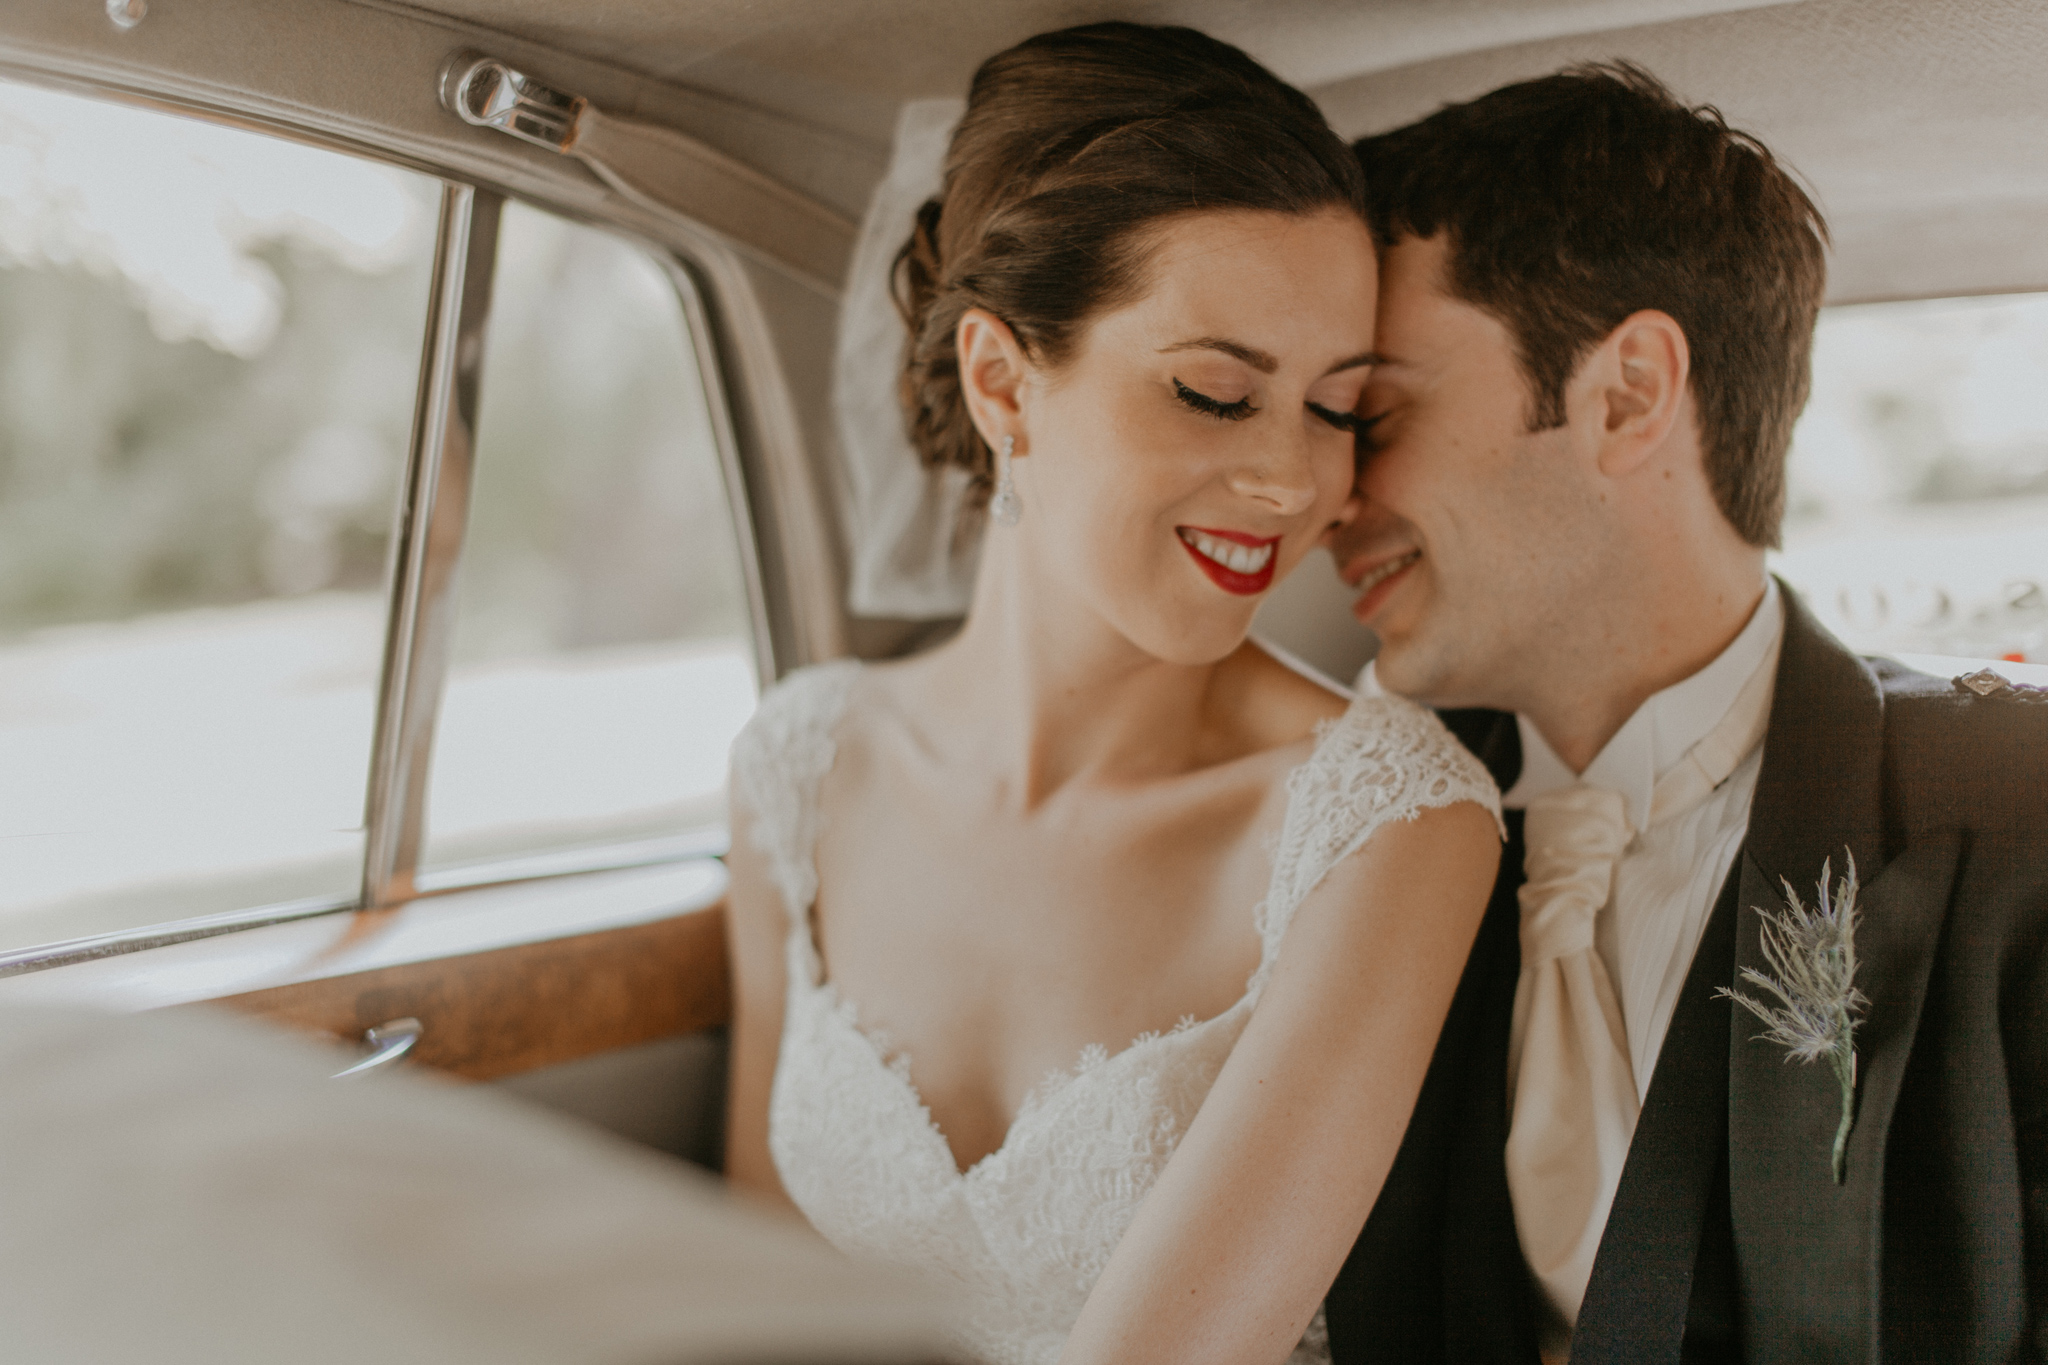 Bride and groom romantic photo in car on wedding day